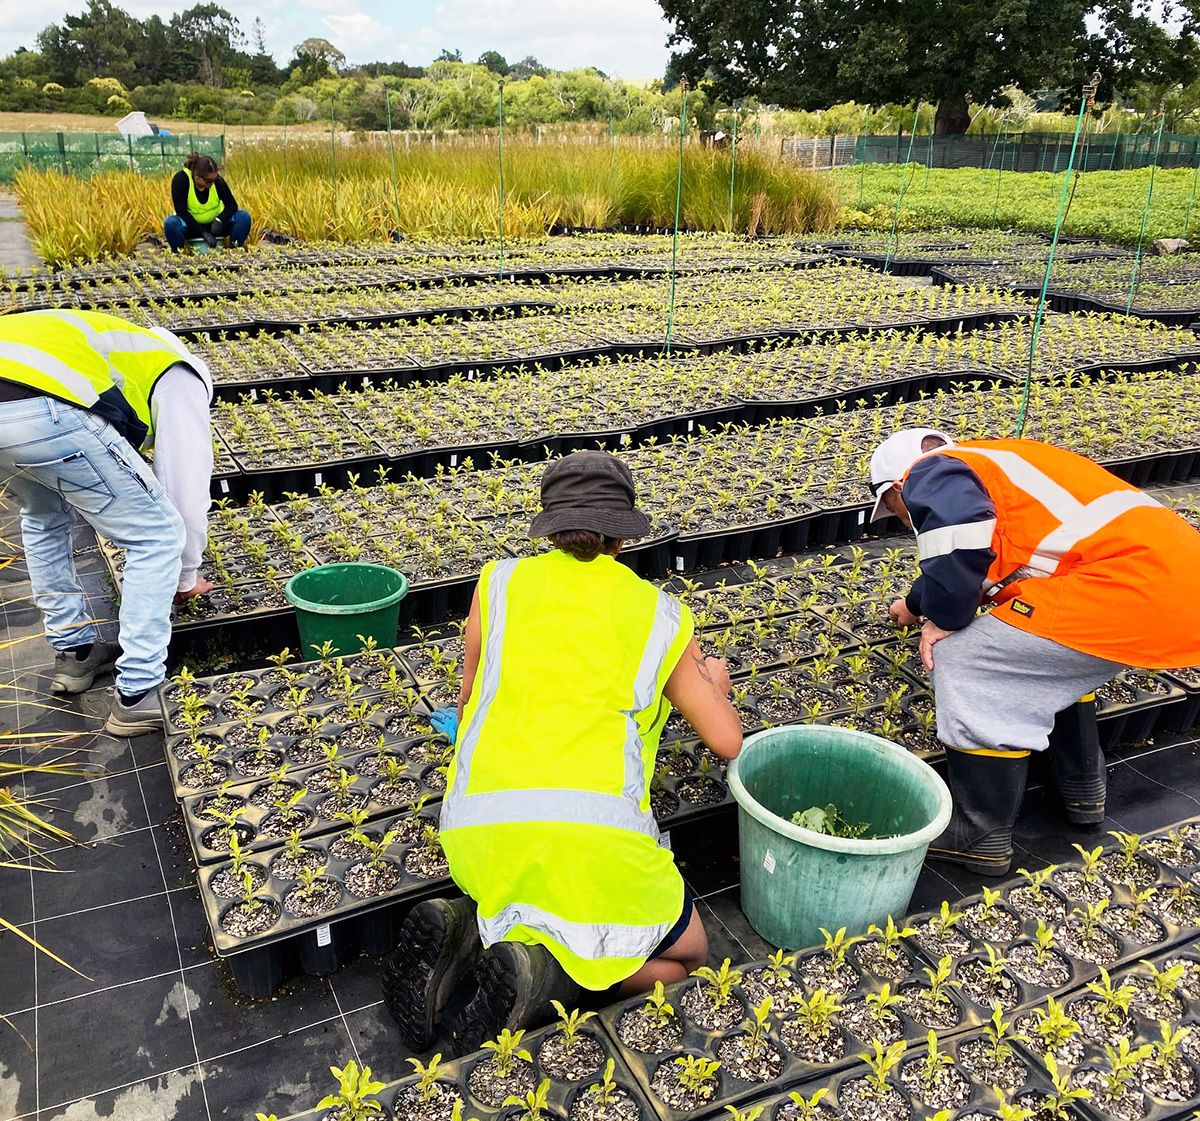 A group of people in bright safety vests work outdoors at a plant nursery, removing weeds from around many rows of seedlings.